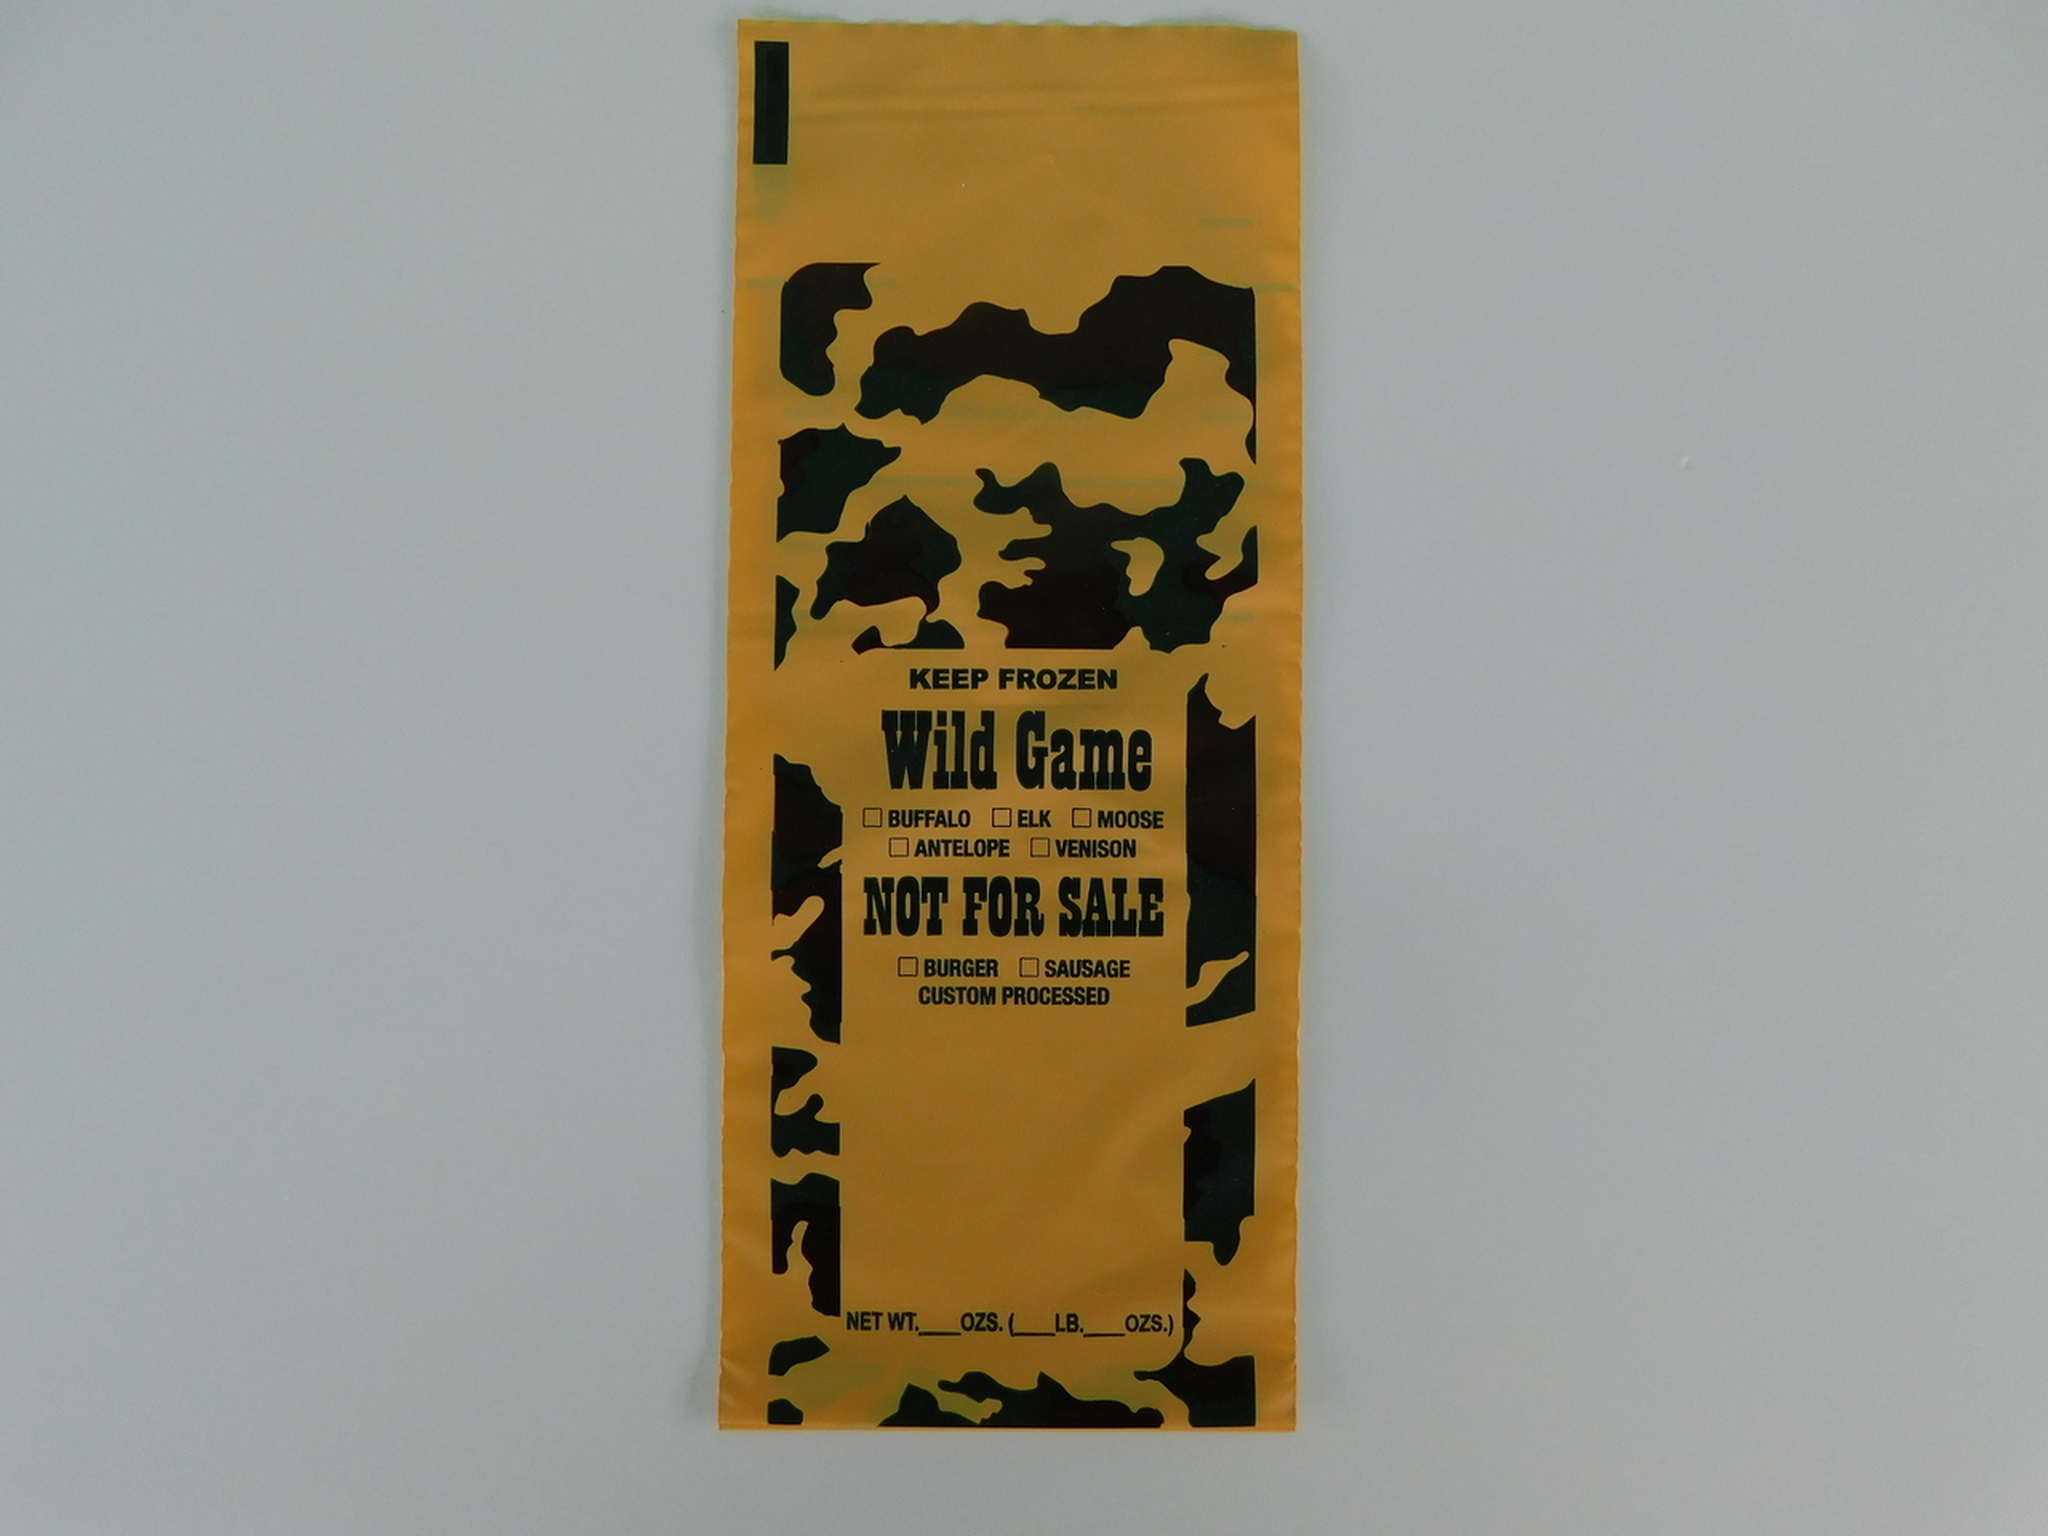 Burger Sausage Freezer Bags 200 ct 1-Lb capacity for all wild game meat